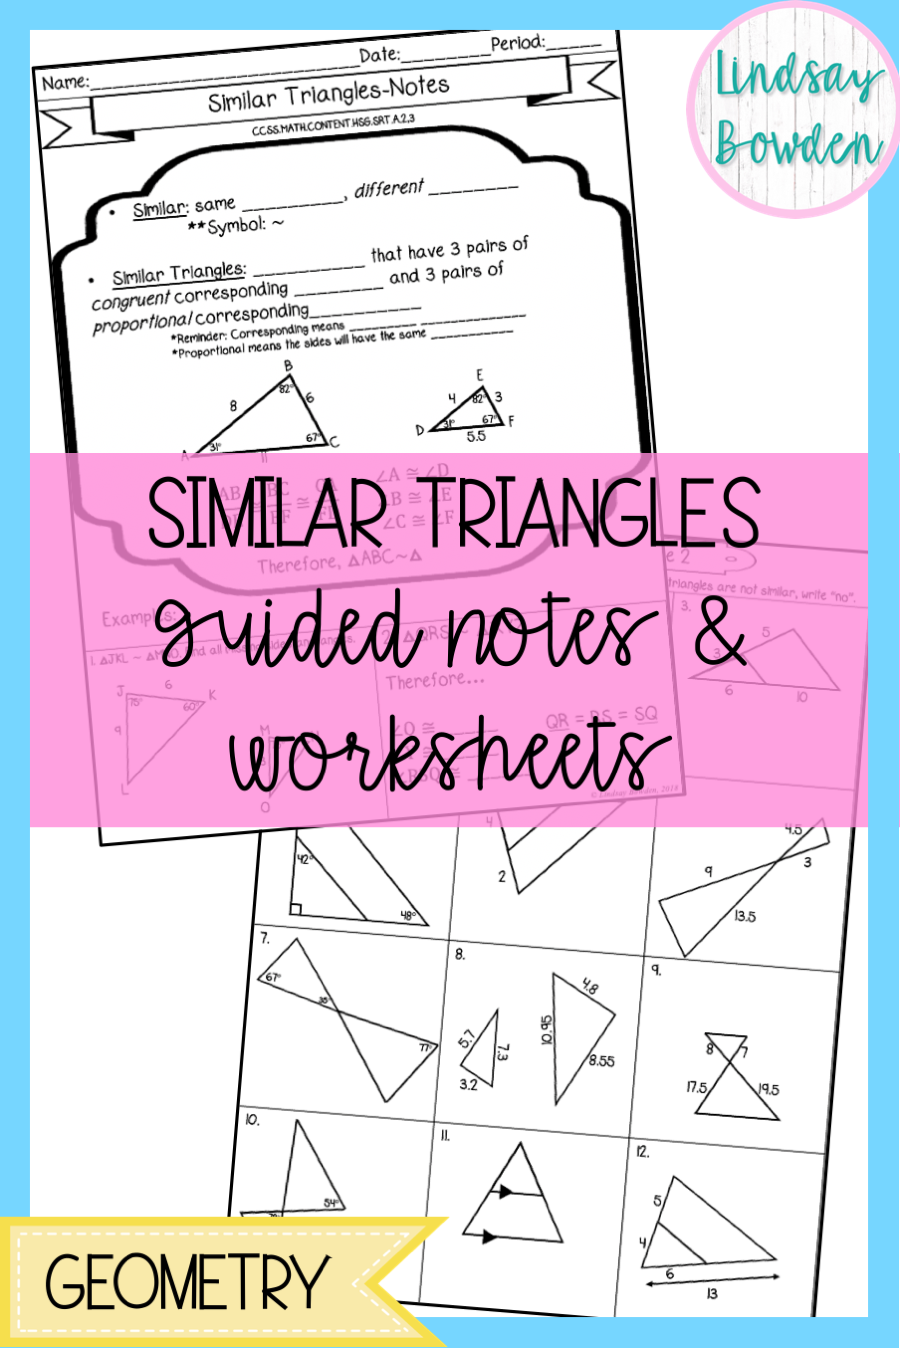 medium resolution of Similar Triangles Notes and Worksheets   Similar triangles